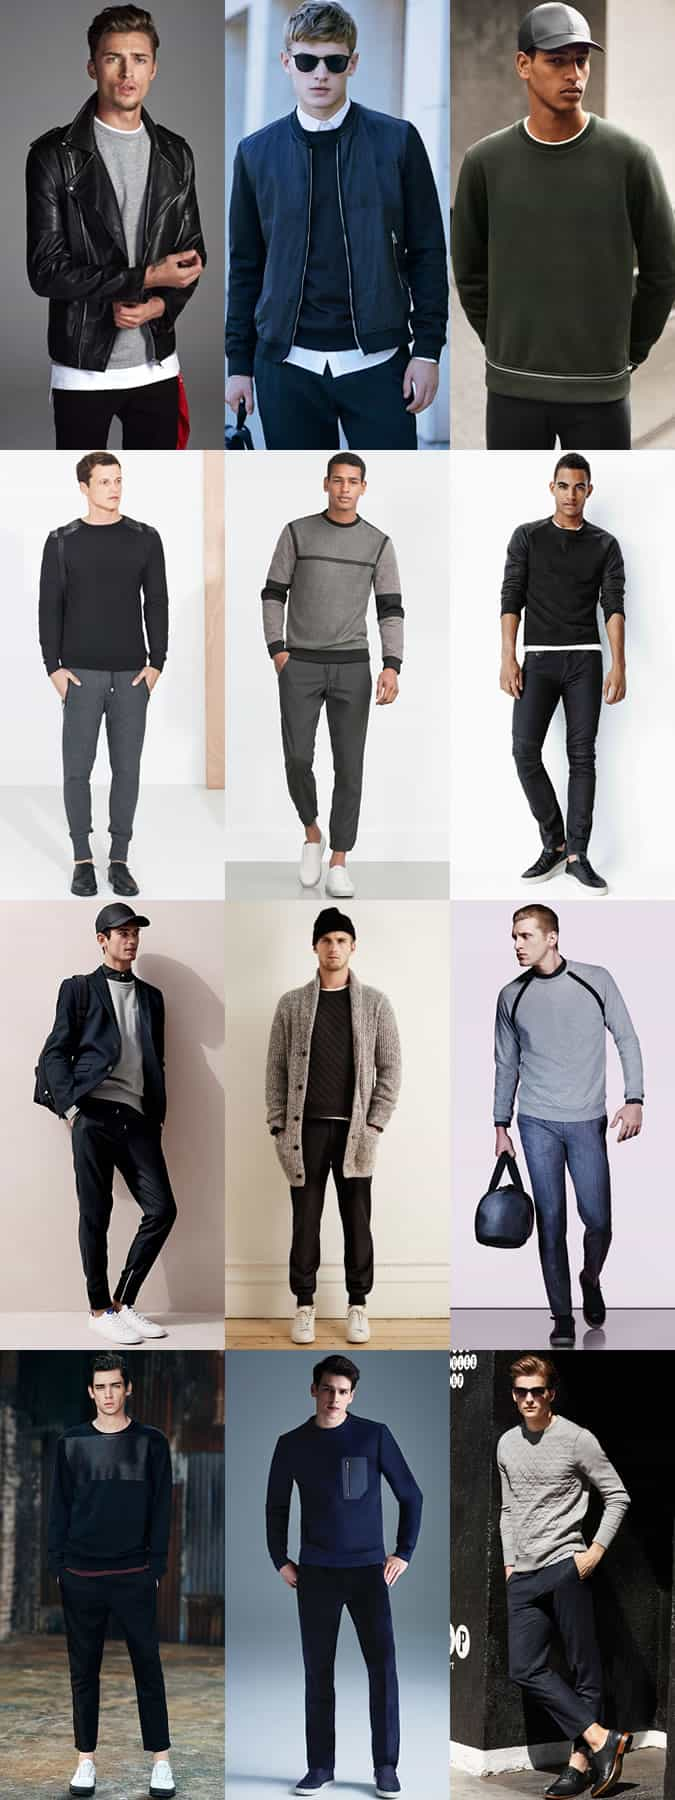 Men's Sweatshirts Outfit Inspiration Lookbook